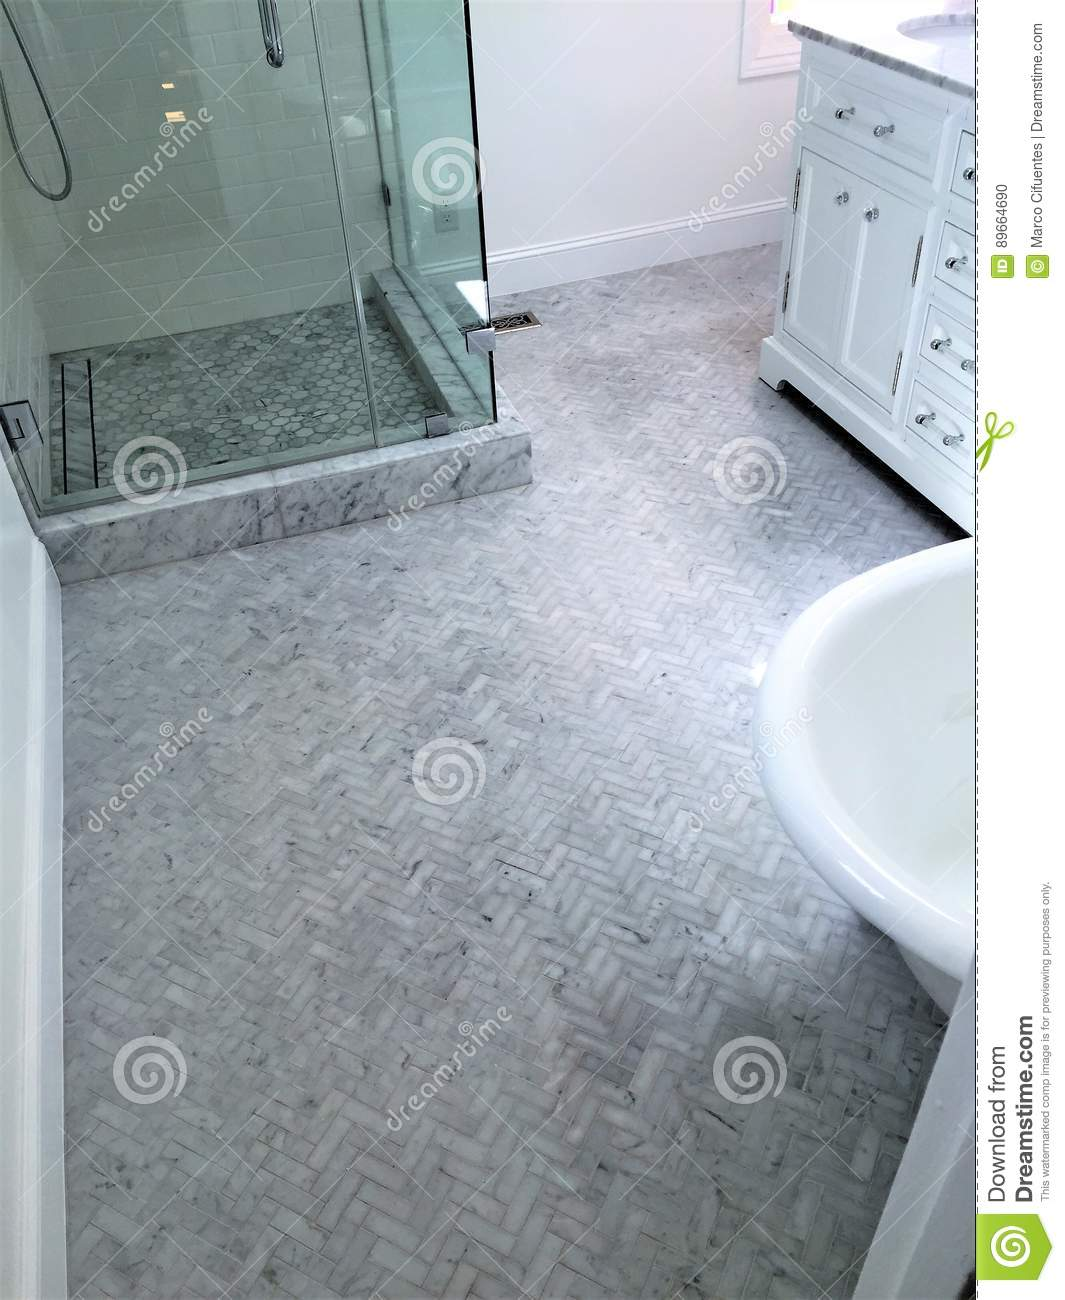 Shower Marble Floor Herringbone Pattern Stock Photo - Image of angle ...